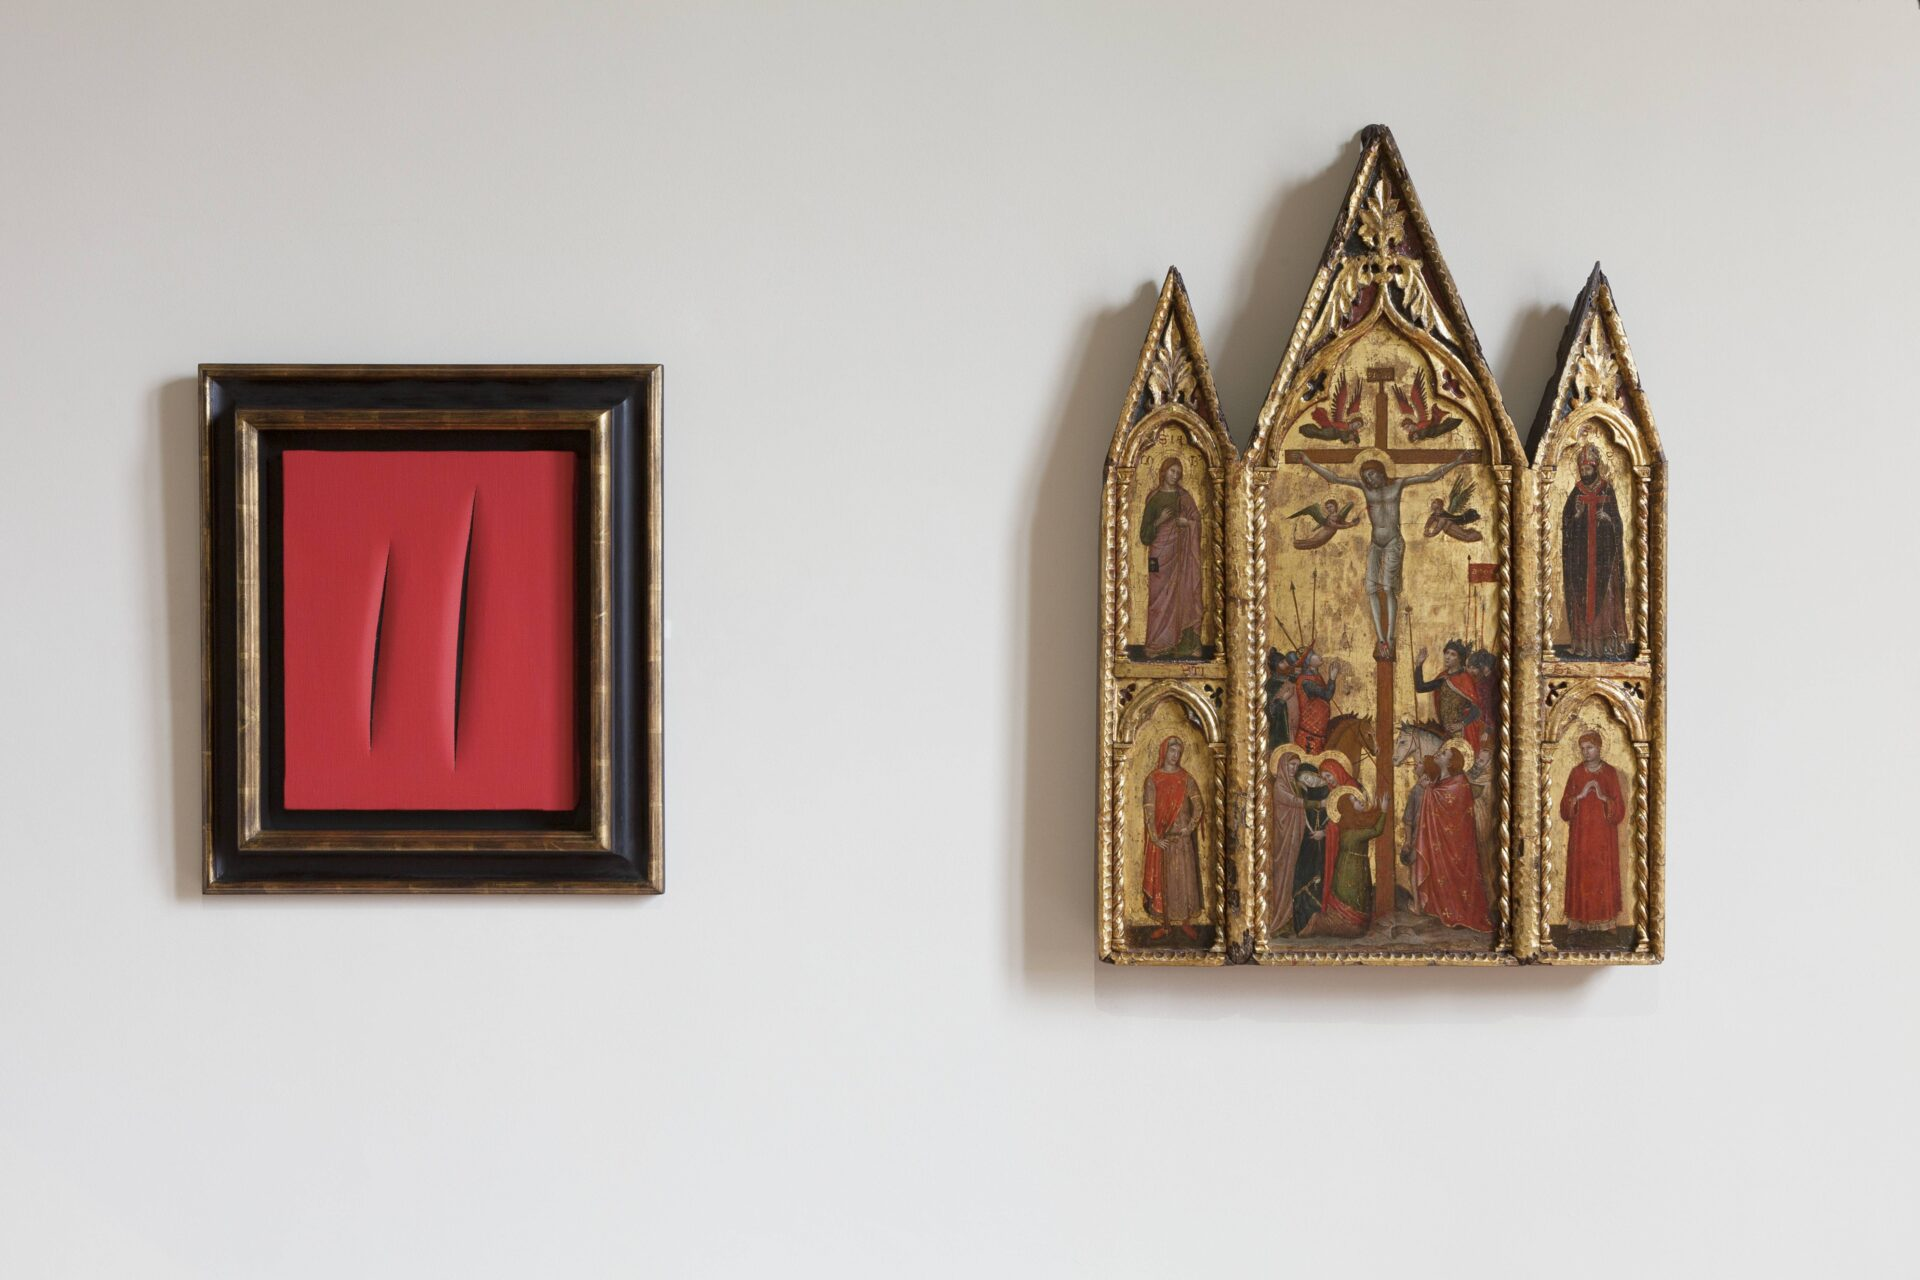 From the left, Lucio Fontana, Spatial Concept. Waiting, 1964 – 1965. On the right, Triptych Crucifixion: St. James and St. Rusticus (left); St. Augustine and St. Lawrence (right); Stars and floral motifs (on the back), Secondo Maestro di San Zeno.